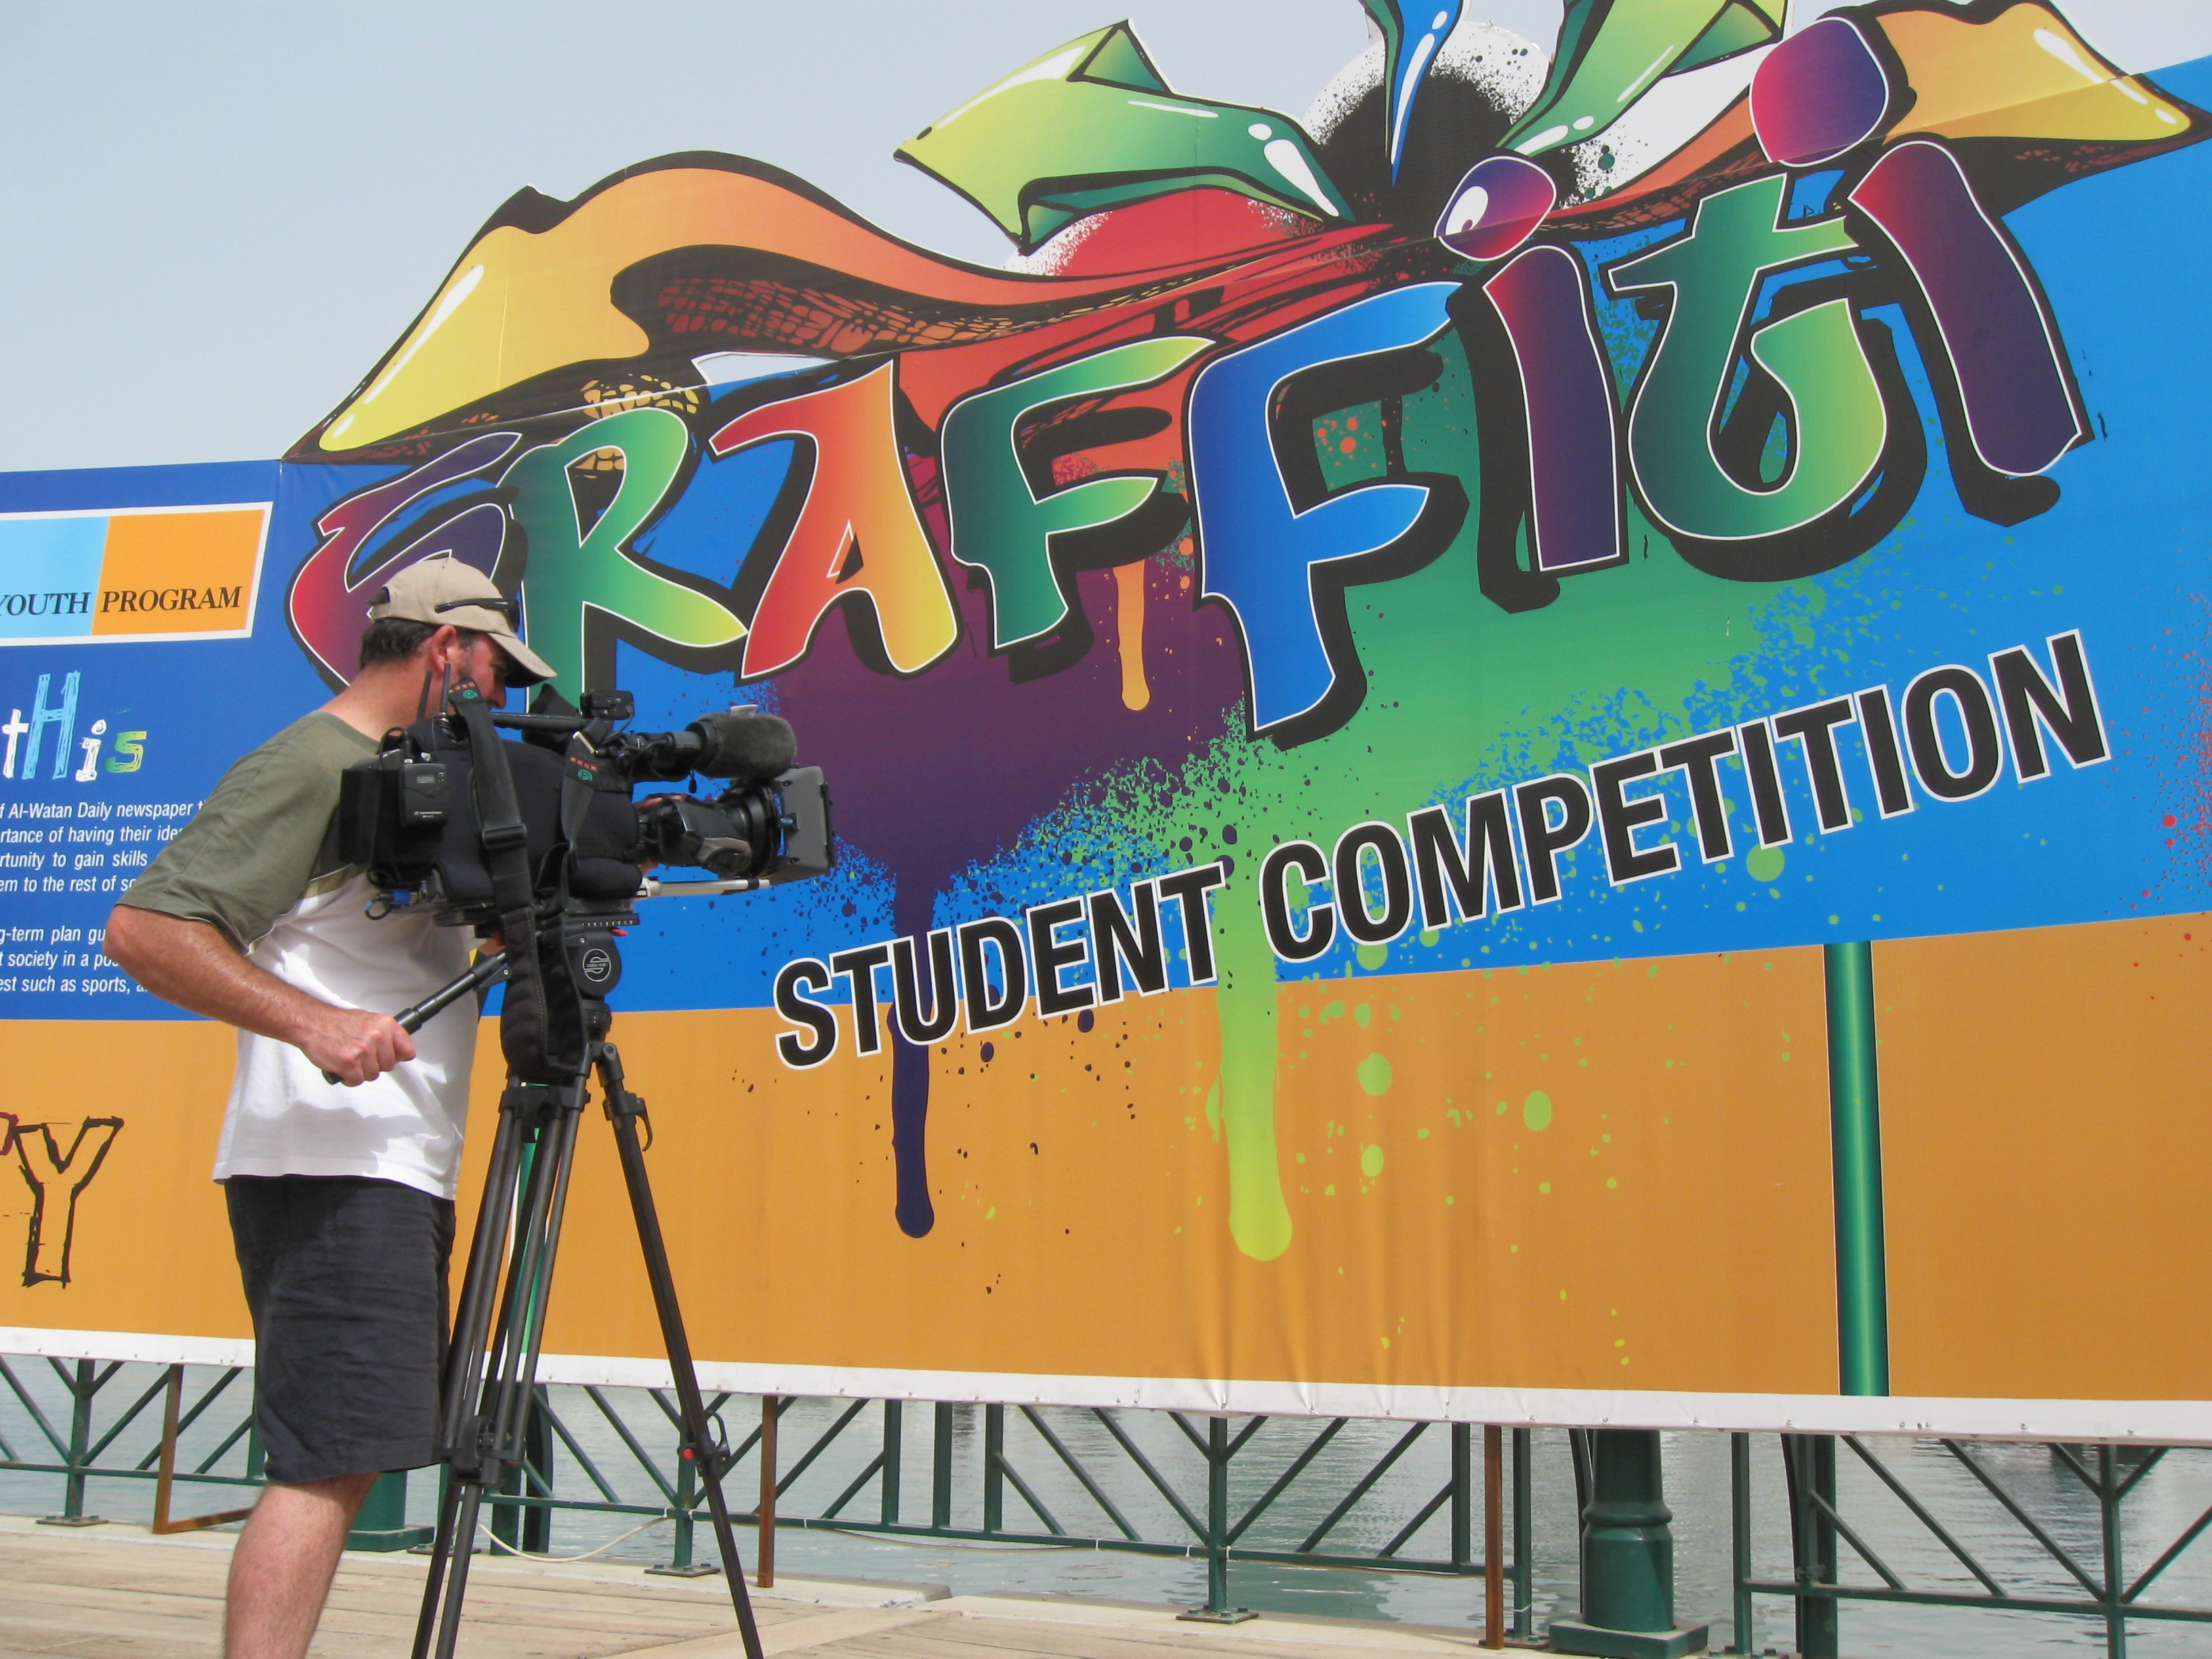 Cameraman James Stacey getting footage of the Graffiti Student Competition, part of the Al-Watan Daily Youth Initiative.